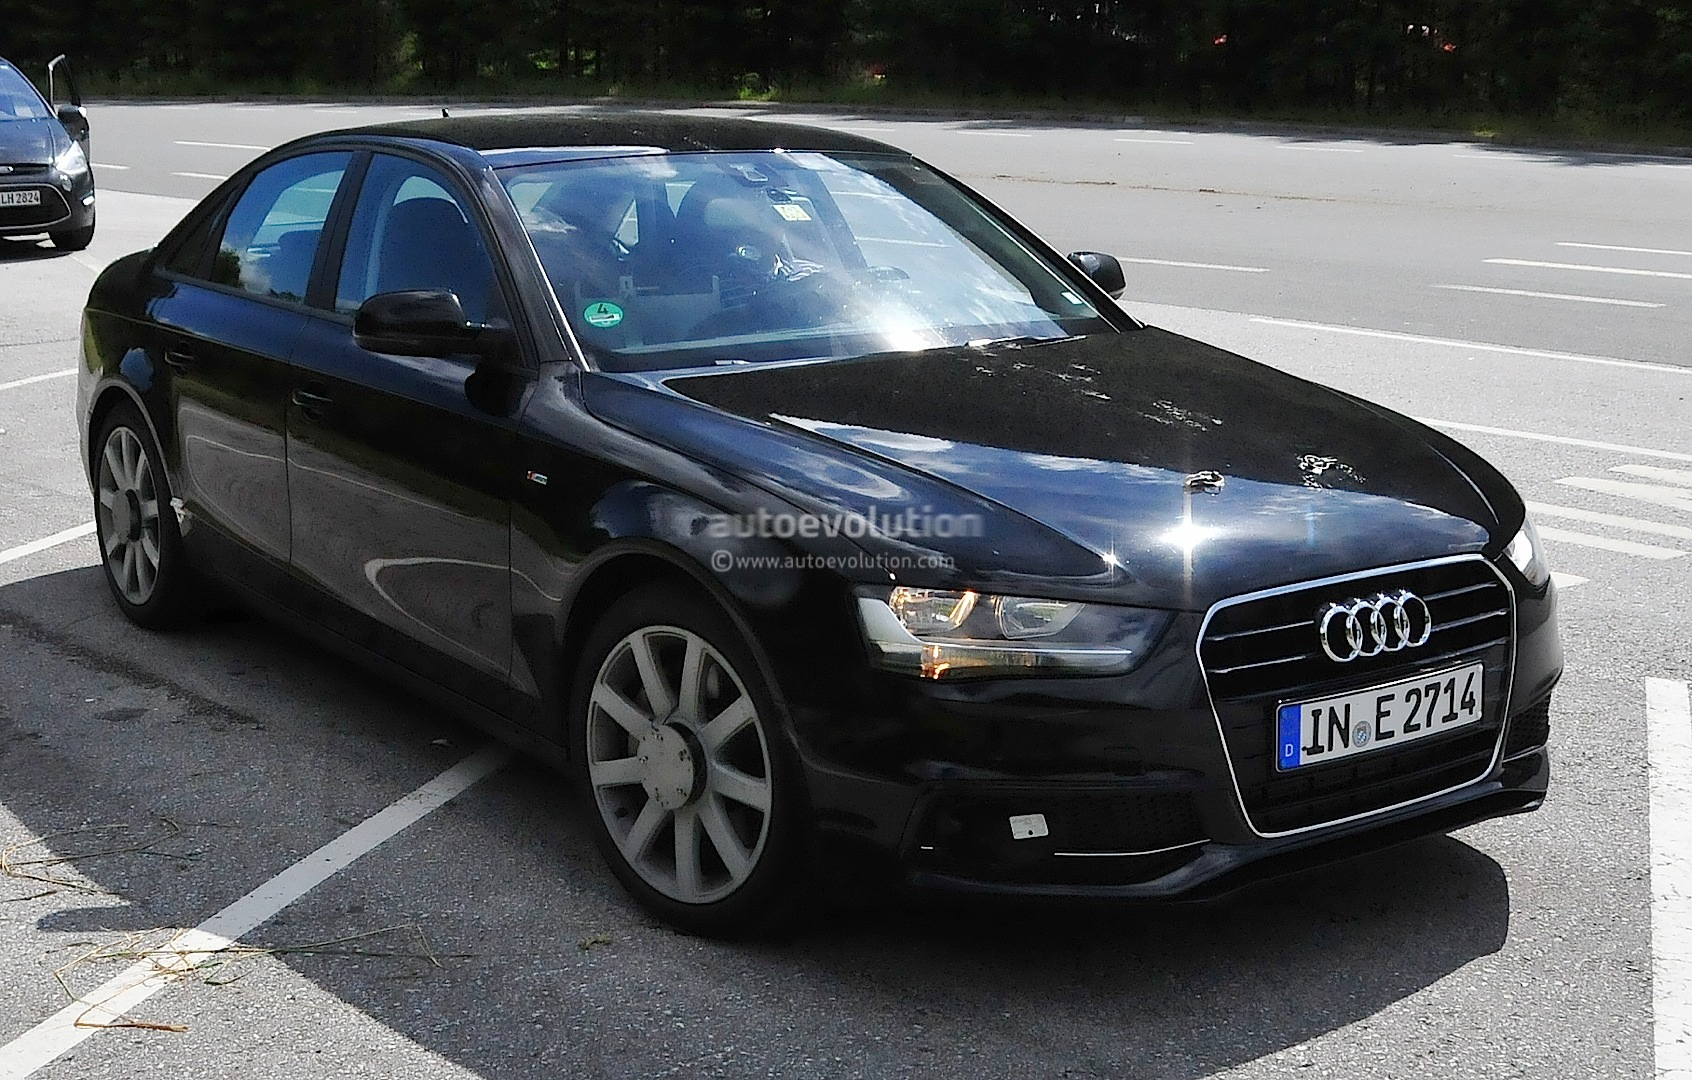 2016 audi a4 spyshots reveal new mmi infotainment display. Black Bedroom Furniture Sets. Home Design Ideas